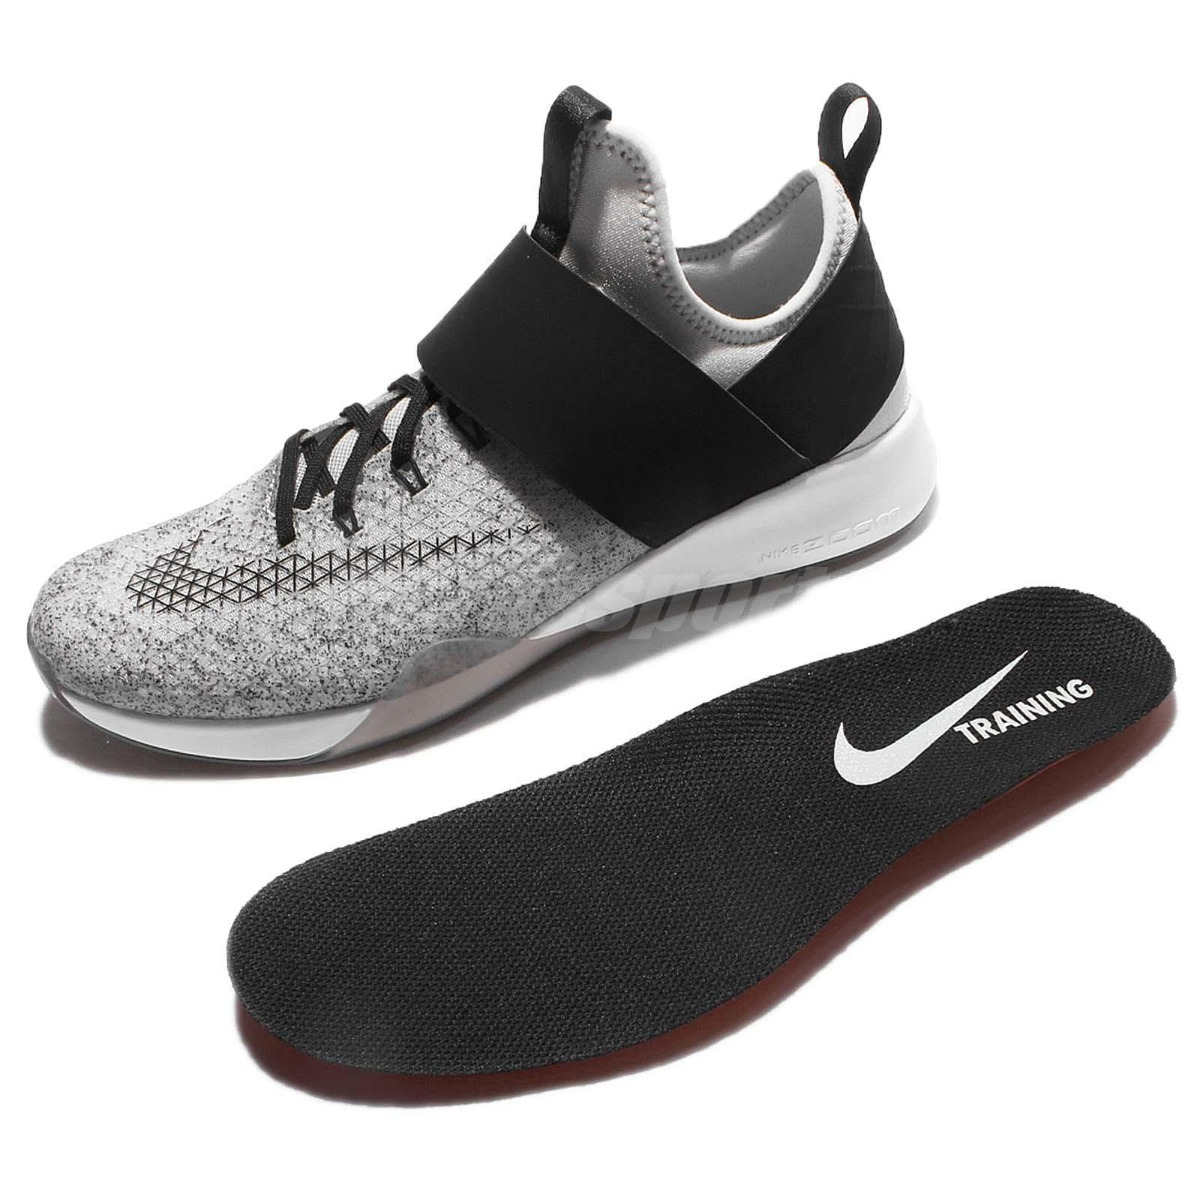 d16631b49 Zapatillas Nike Mujer Air Zoom Strong Crossfit Oferta - $ 1.399,99 ...